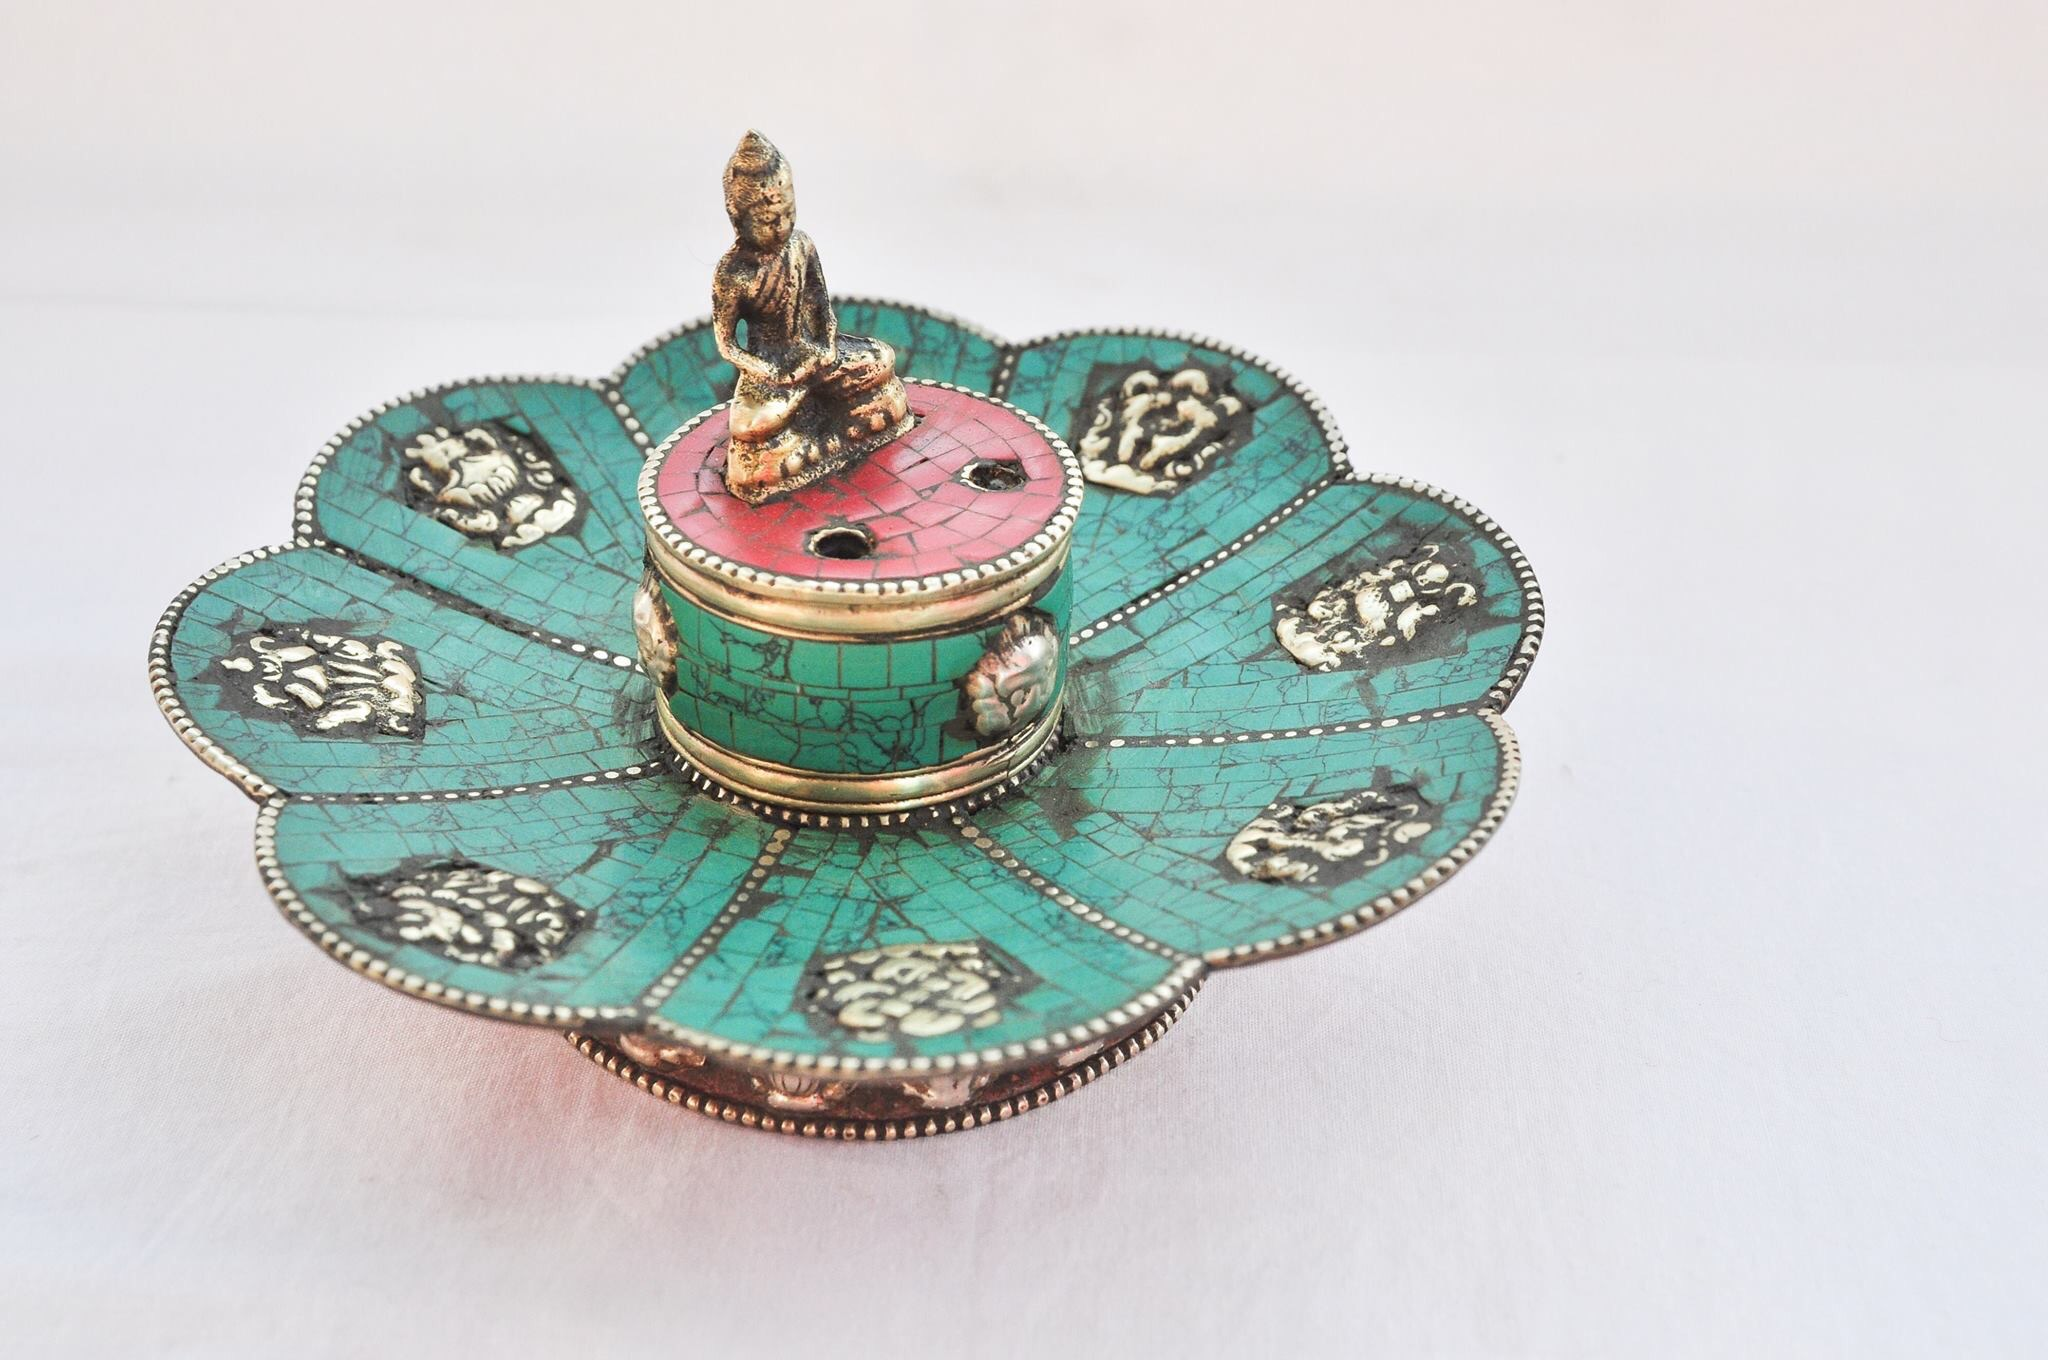 8eed27d96 Tibetan Turquoise Lotus Shape Incense Burner & Candle Holder with ...